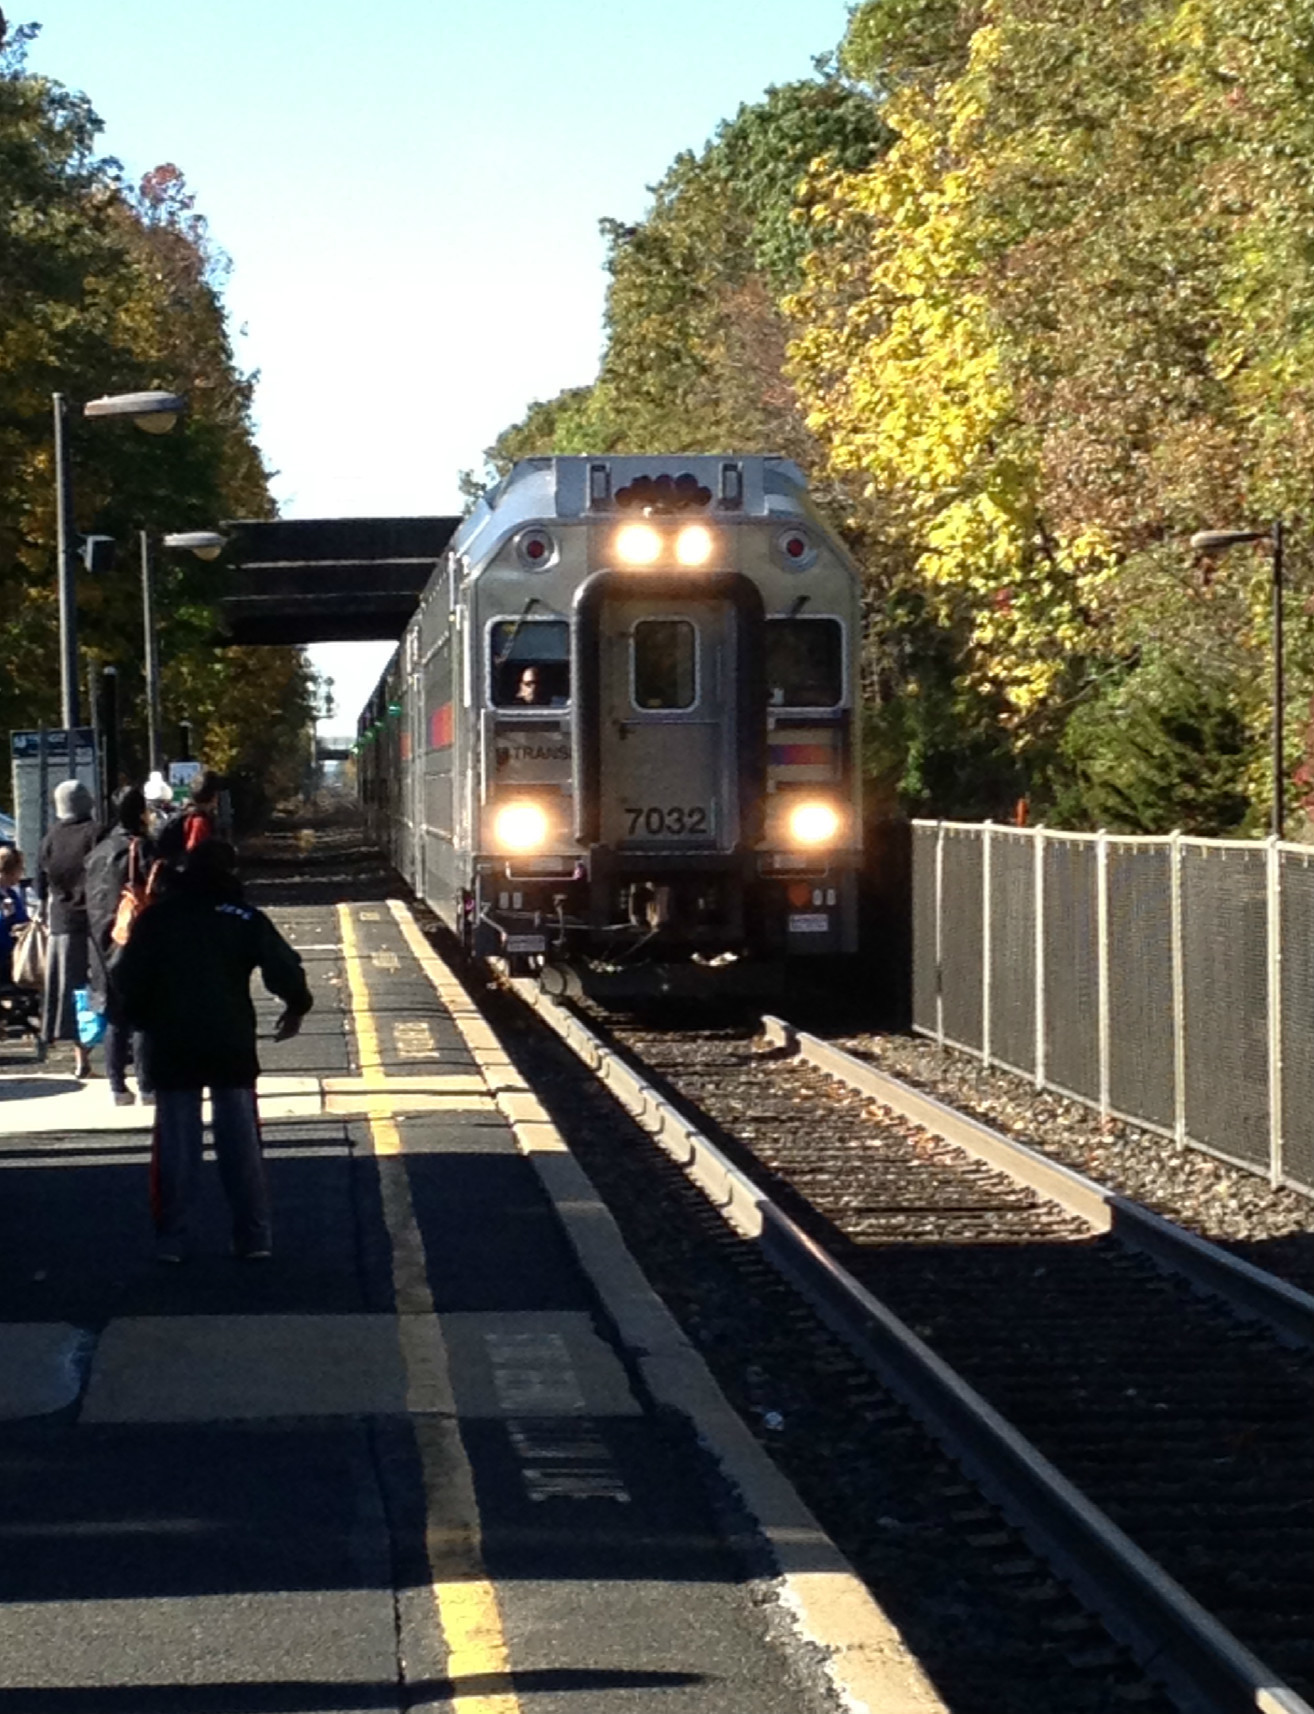 706df927905ccd5c0daf_NJT_1016am_train_pulls_into_Fanwood_10-27-14.jpg